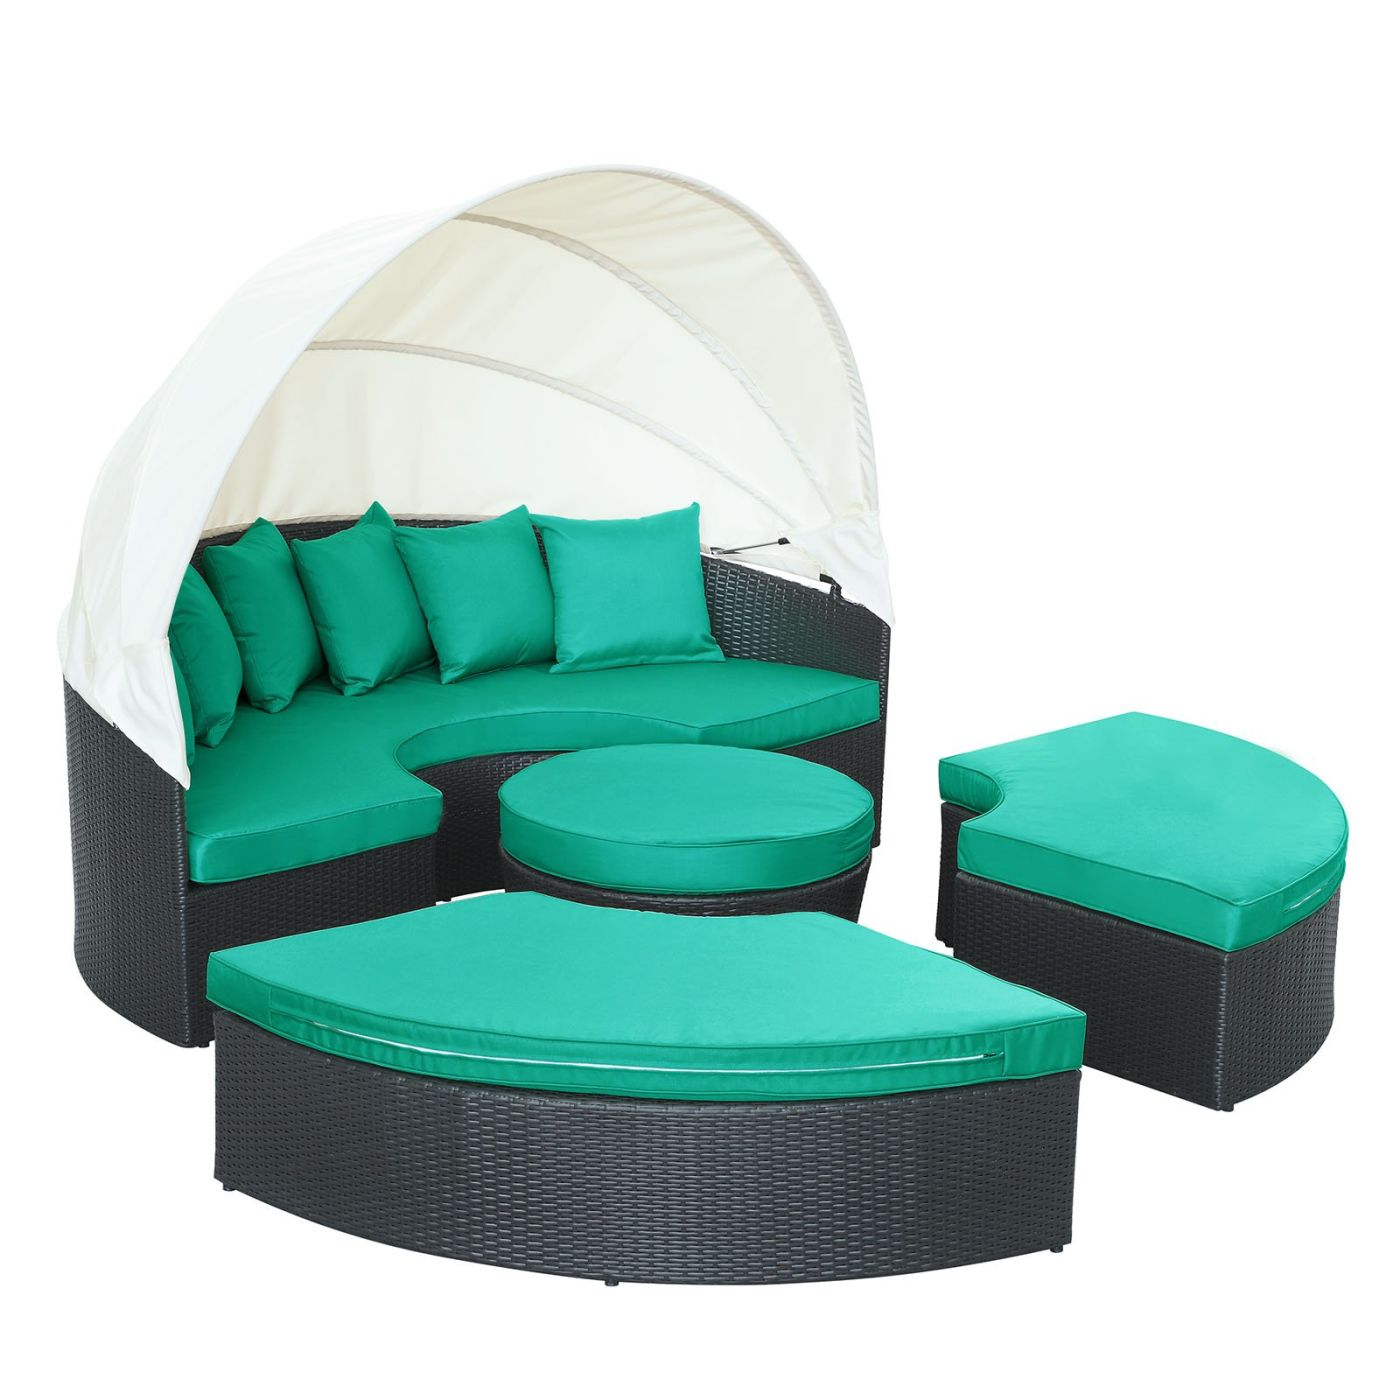 modway eei 983 exp trq set quest canopy outdoor patio daybed rh contemporaryfurniturewarehouse com DIY Outdoor Daybed with Canopy Outdoor Futons and Daybeds